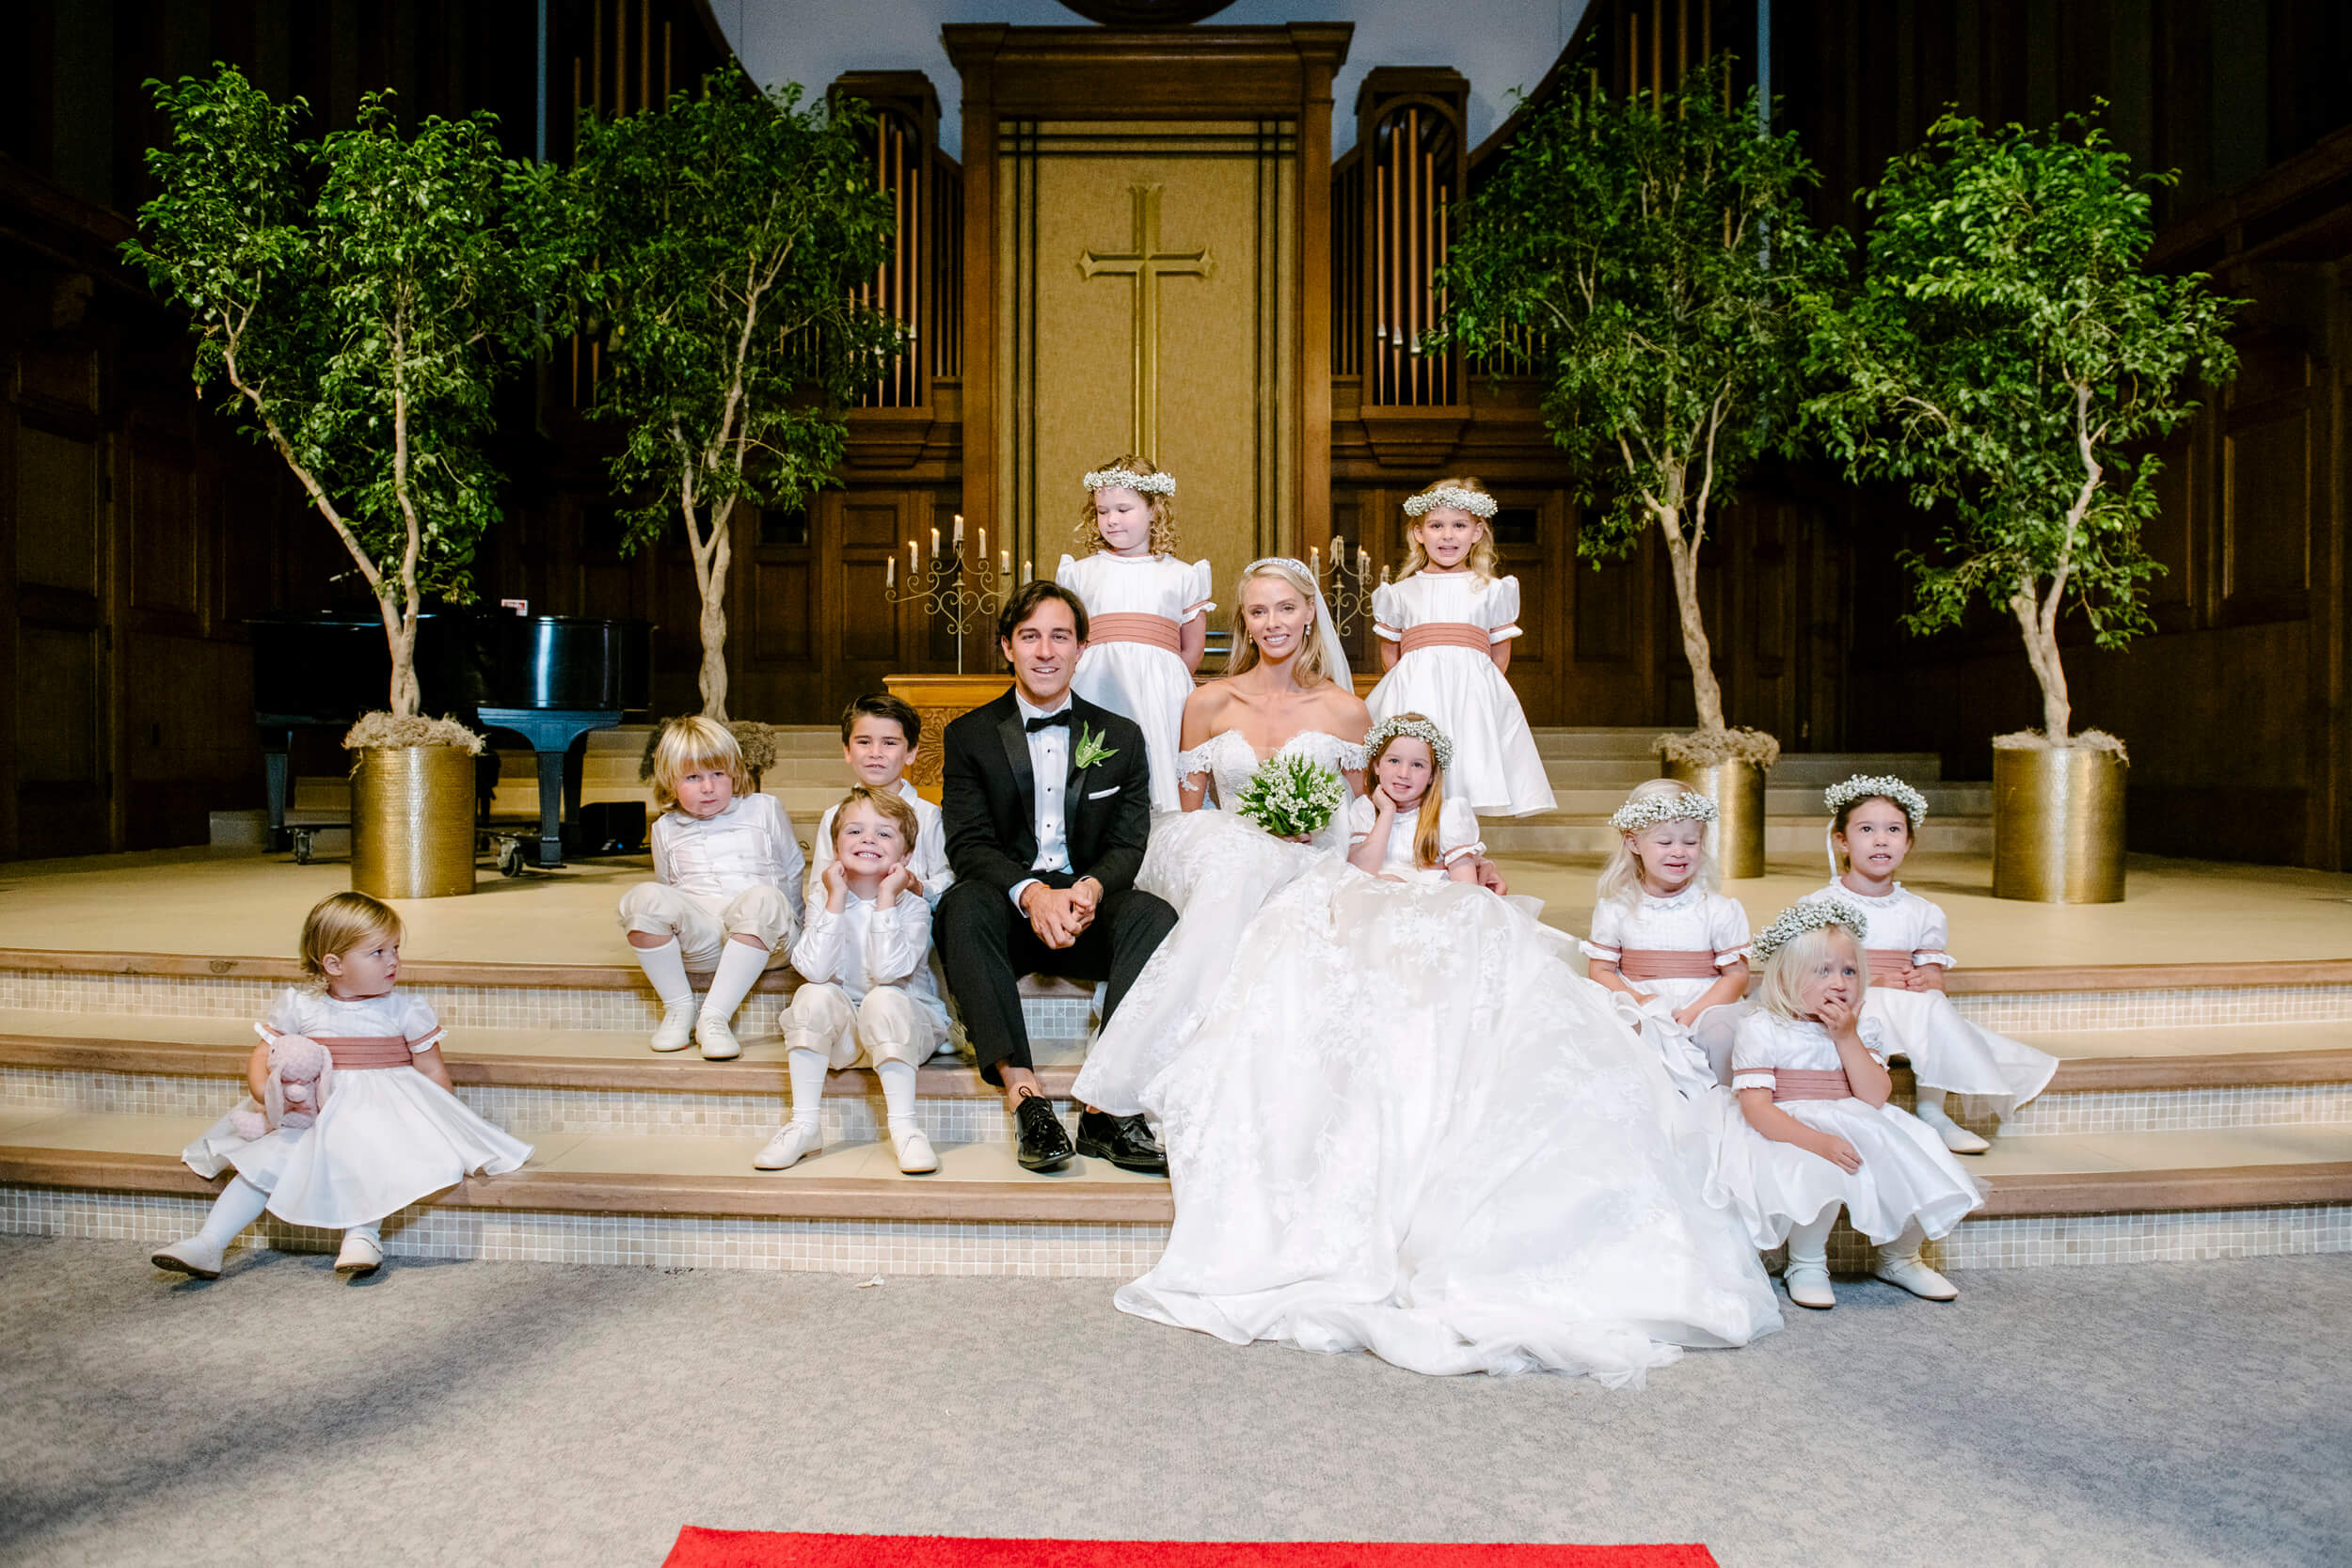 bride and groom pose with children in wedding party for royal family inspired wedding